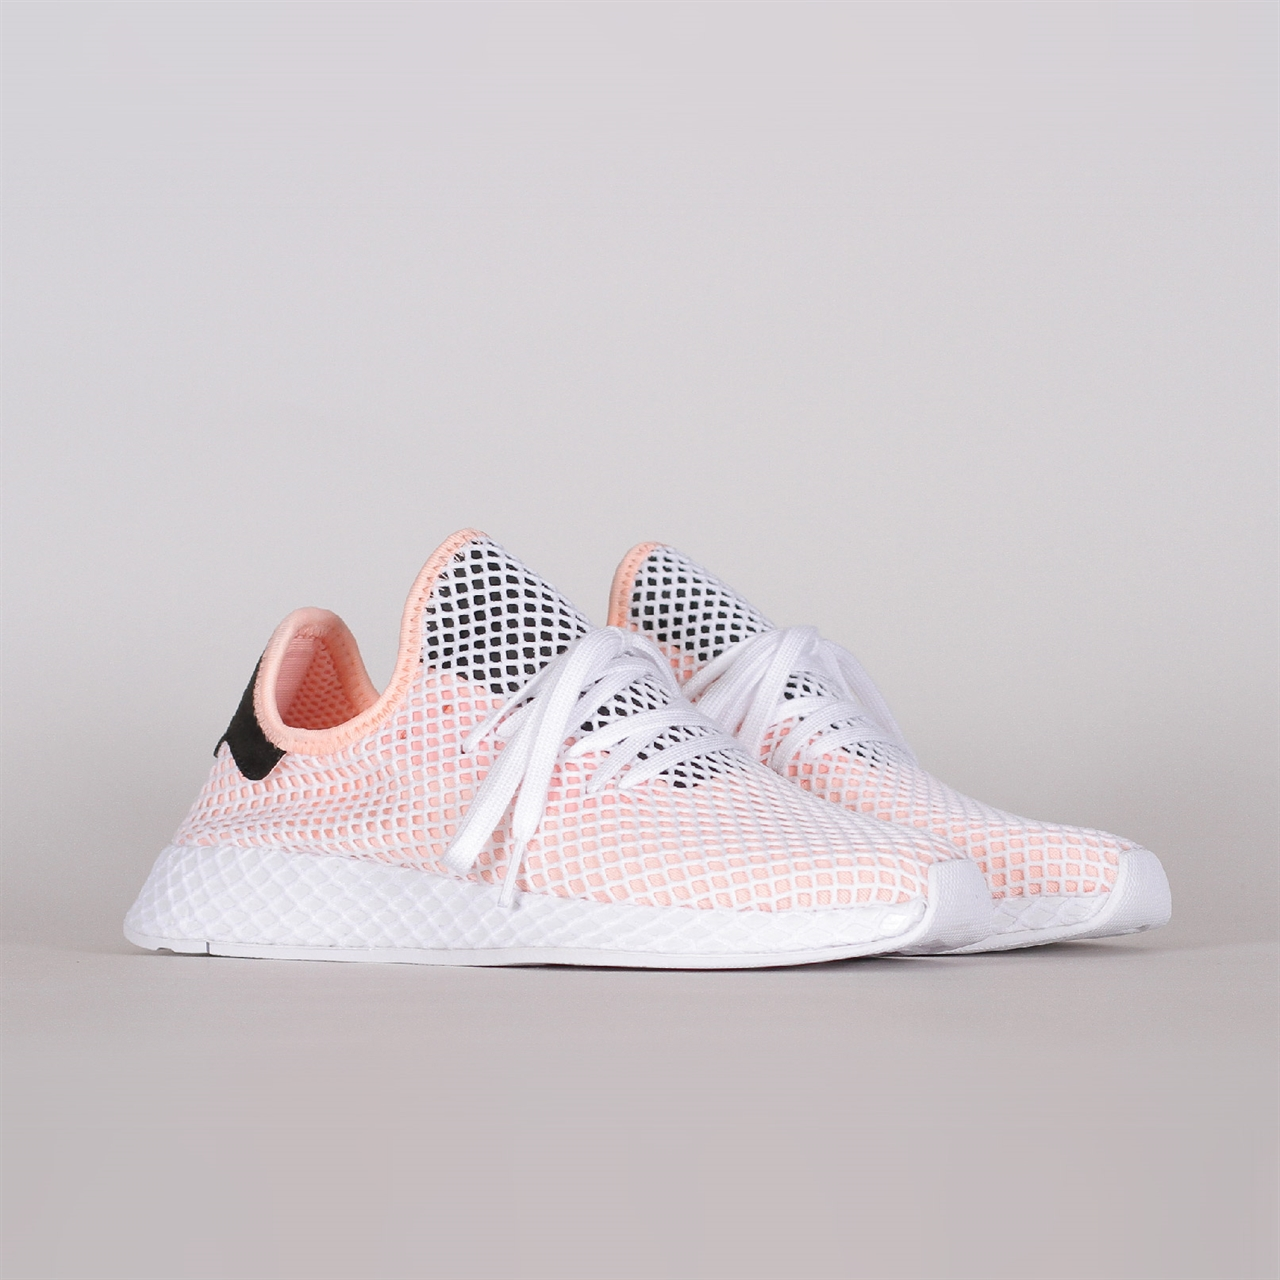 dab3ba97c Shelta - Adidas Originals Deerupt Runner (B28075)